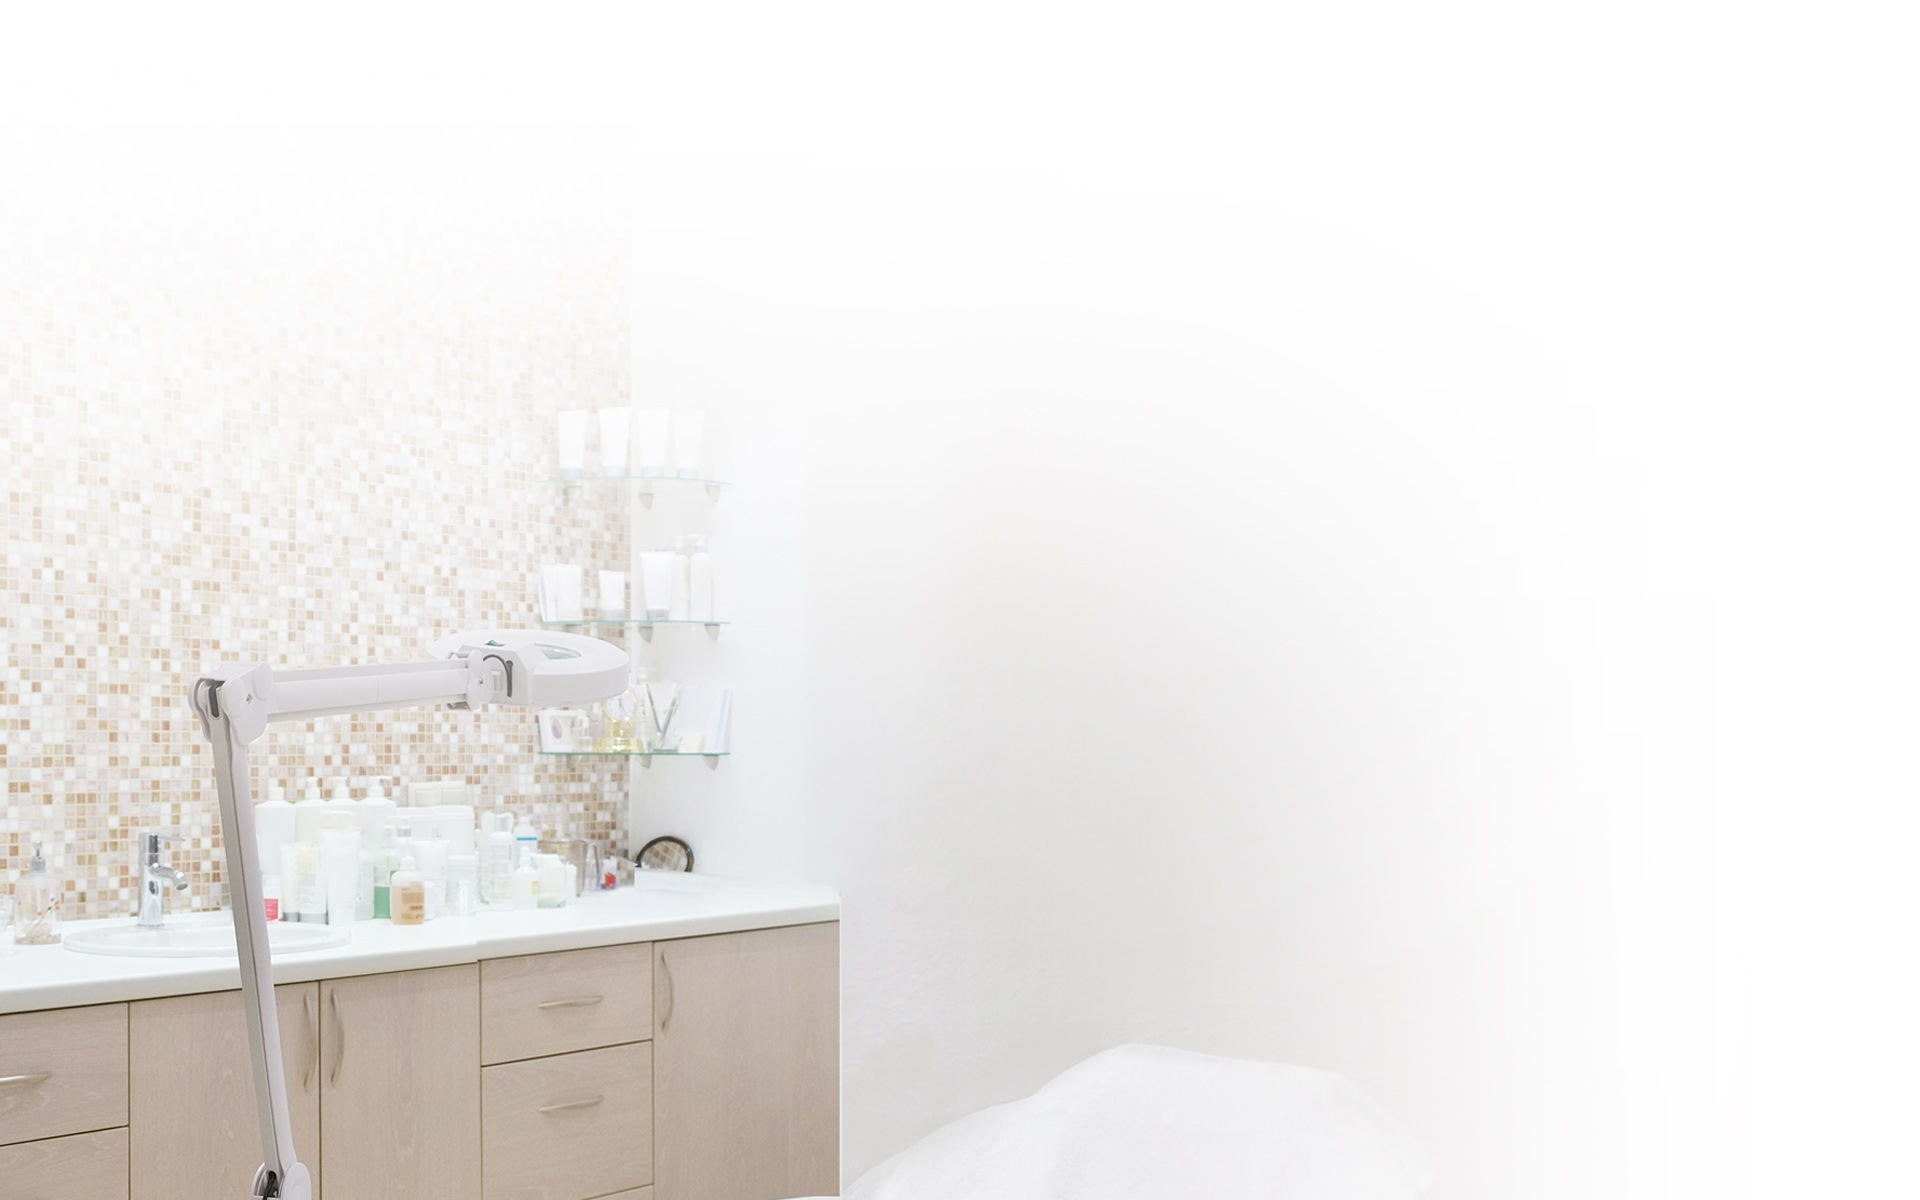 clean image of exam room for product example images